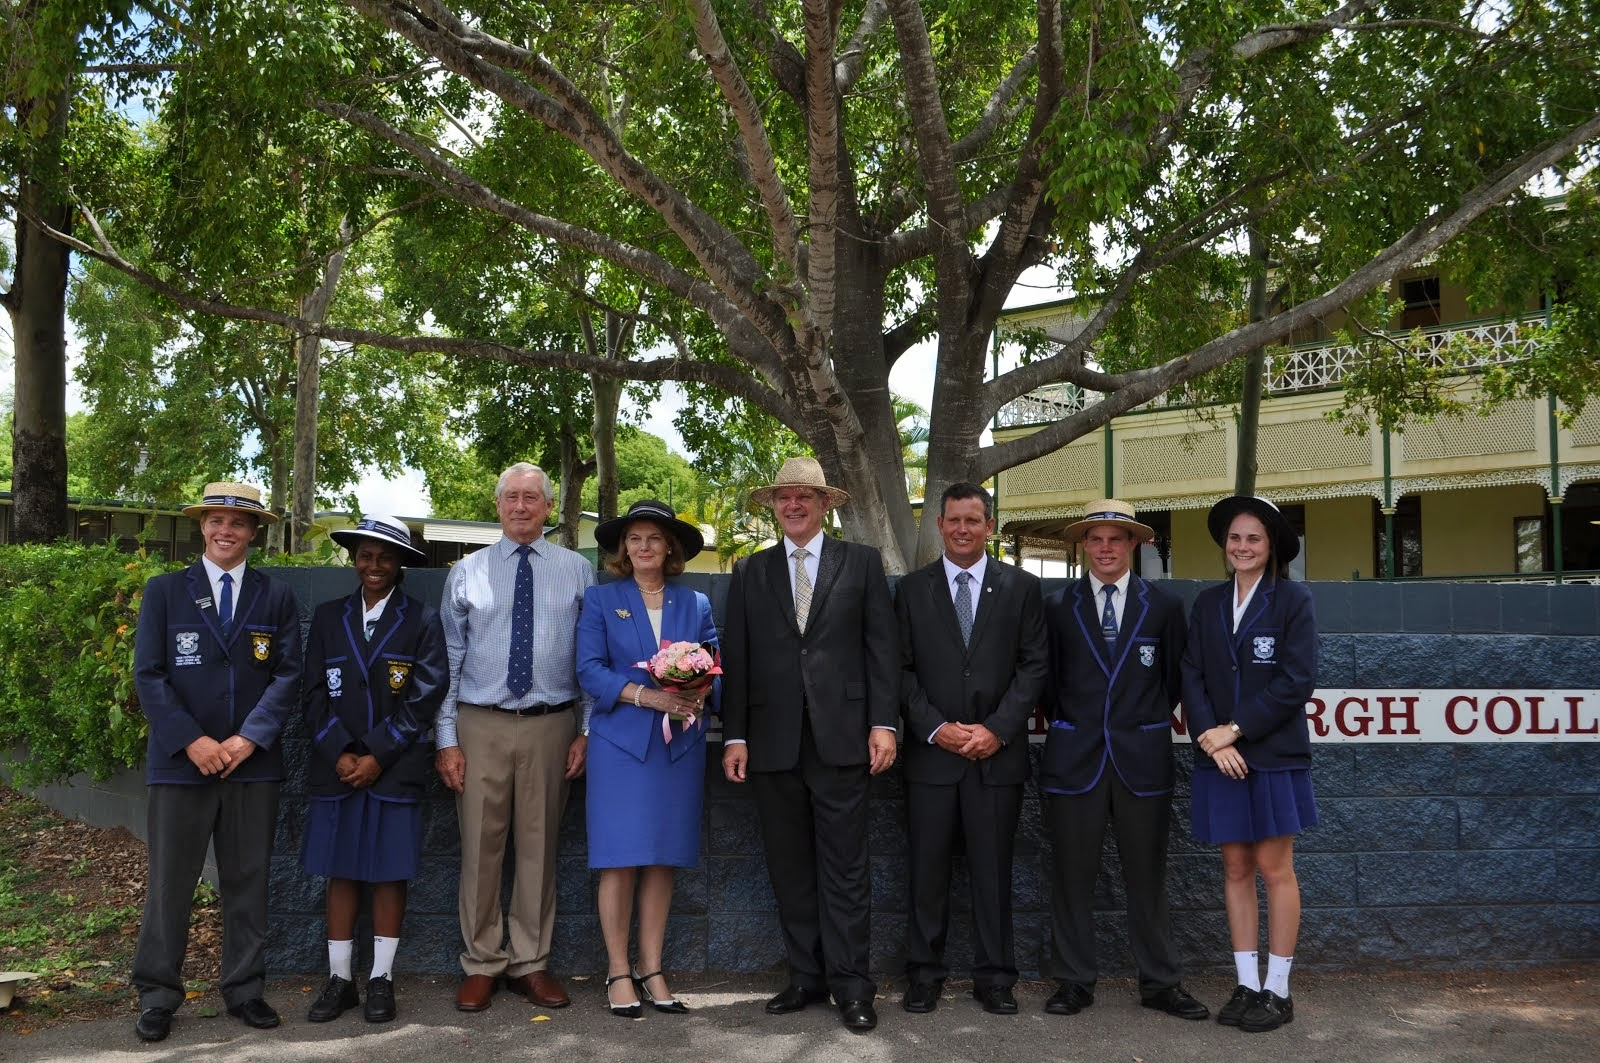 Her Excellency ,the Governor of Queensland, Ms Penelope Wensley AC visits BTC